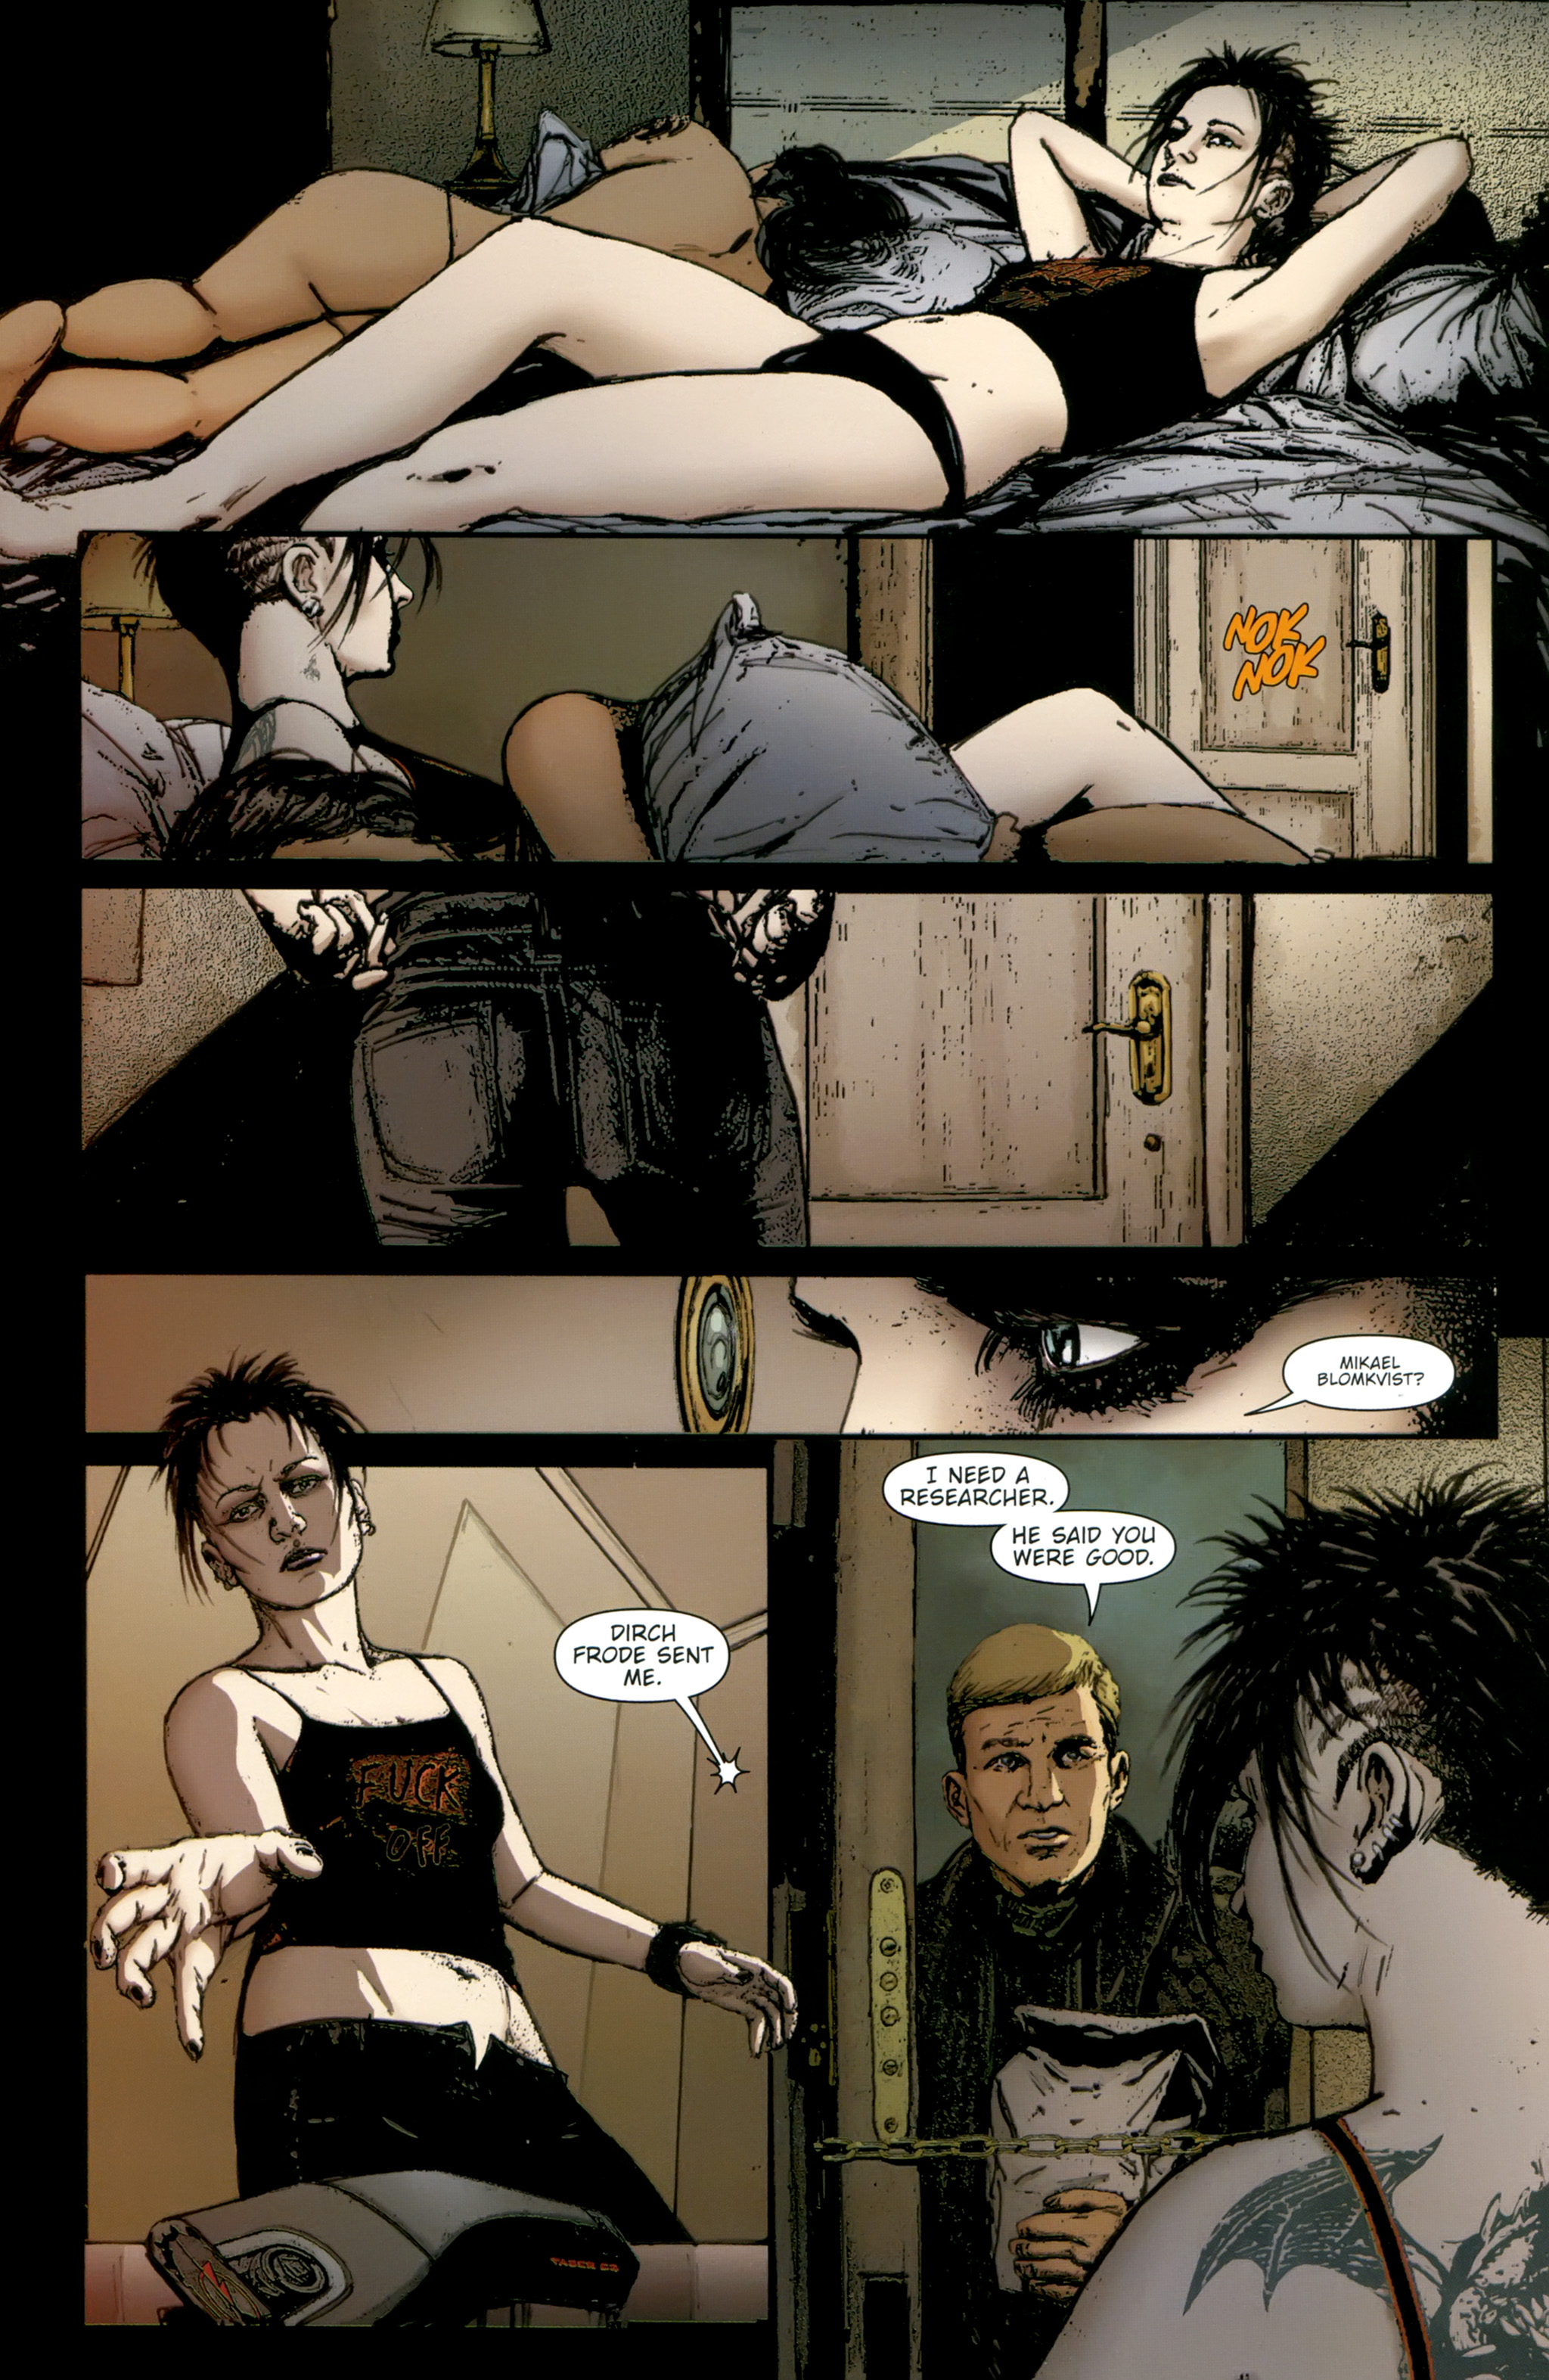 Read online The Girl With the Dragon Tattoo comic -  Issue # TPB 2 - 44